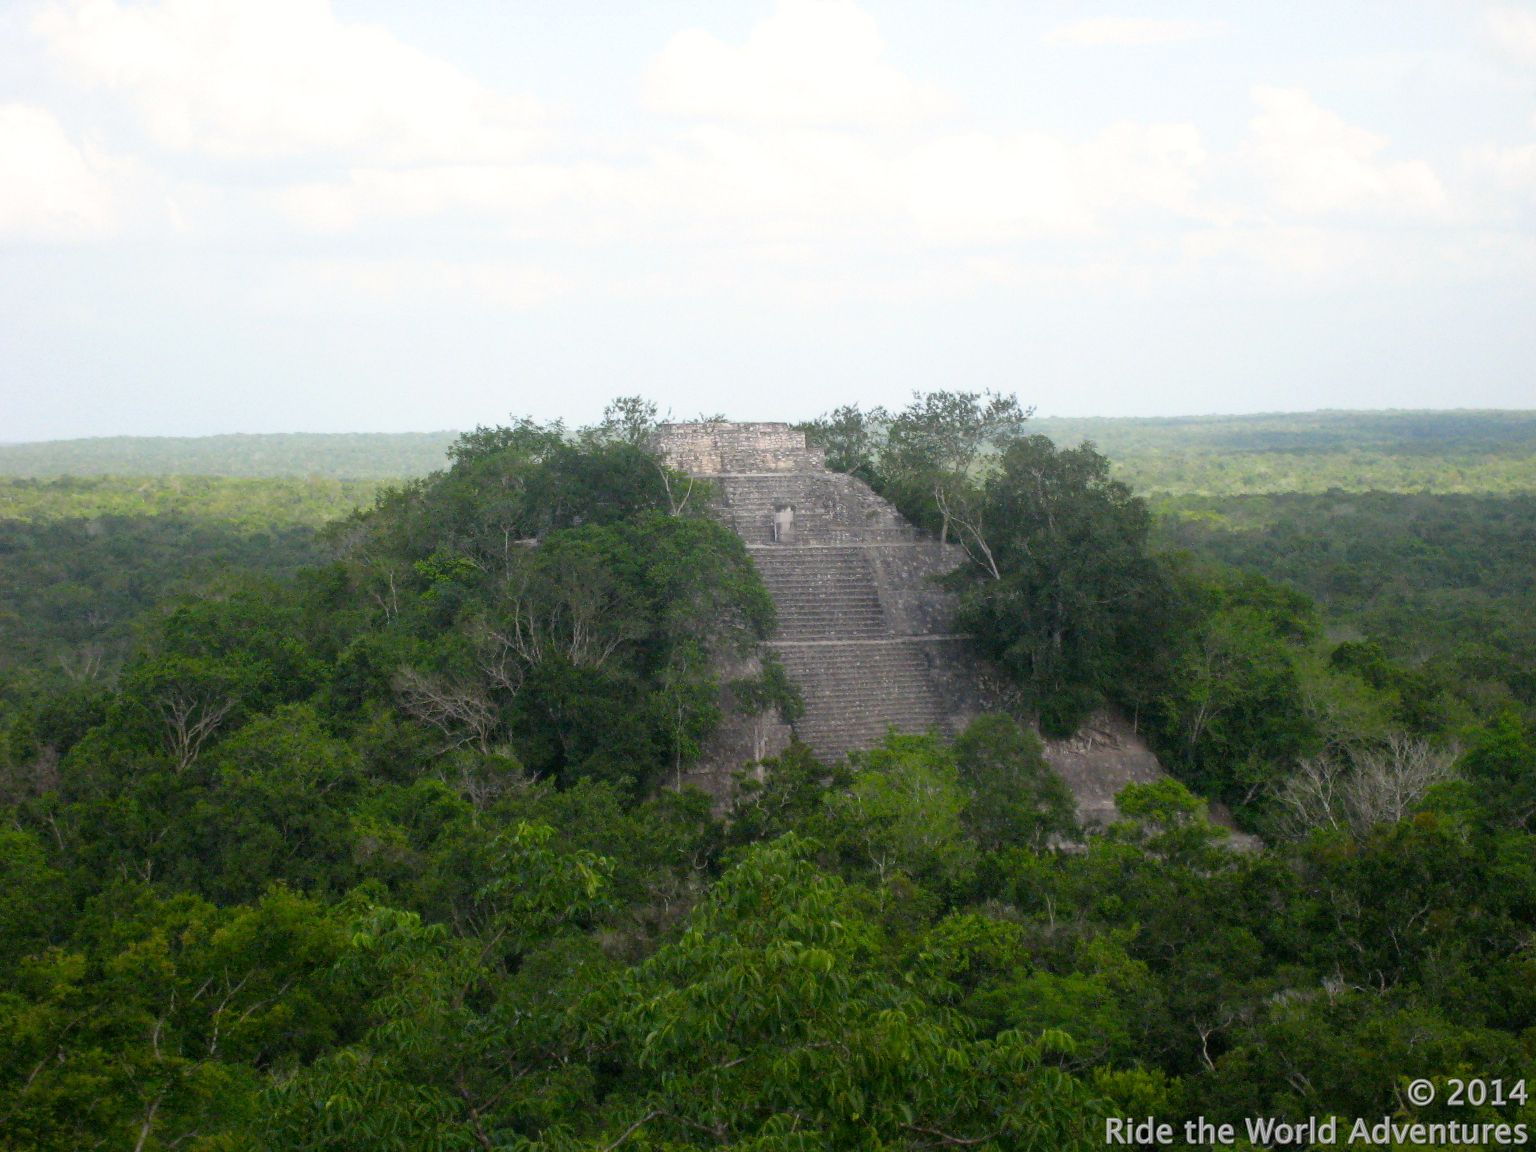 You can almost see Tikal!